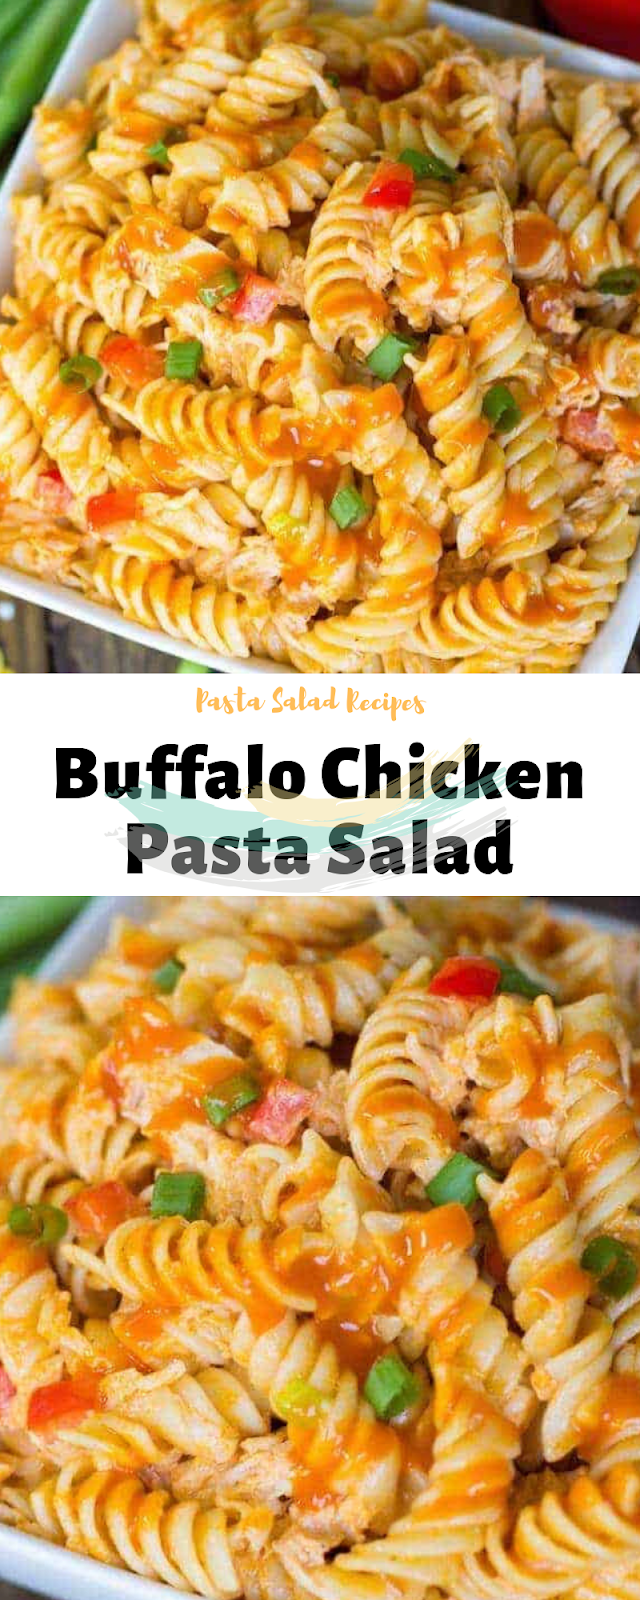 Pasta Salad Recipes | Buffalo Chicken Pasta Salad #buffalochickenpastasalad